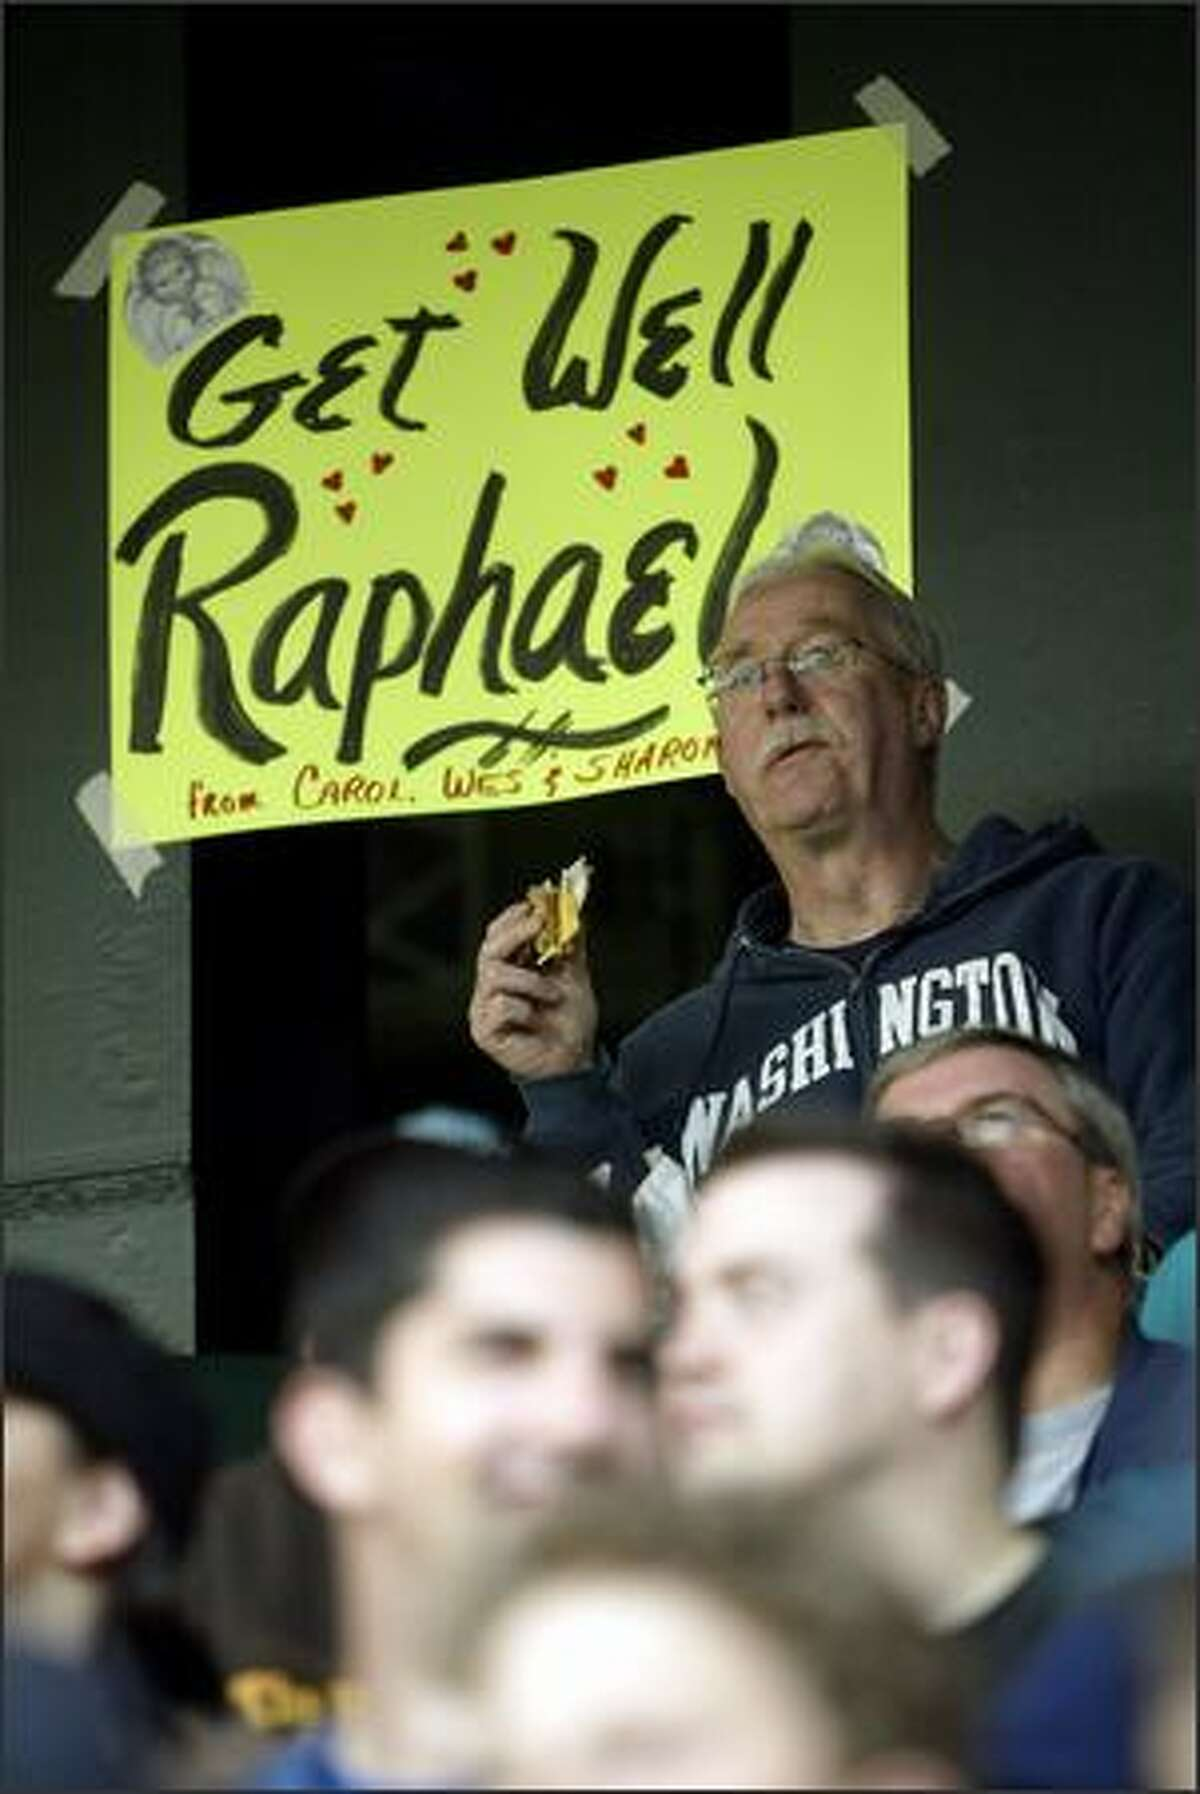 Mariners fan Rich Kemp, of Seattle, watches the game from the 200 level in front of a sign in support of injured player Rafael Soriano posted by other fans.